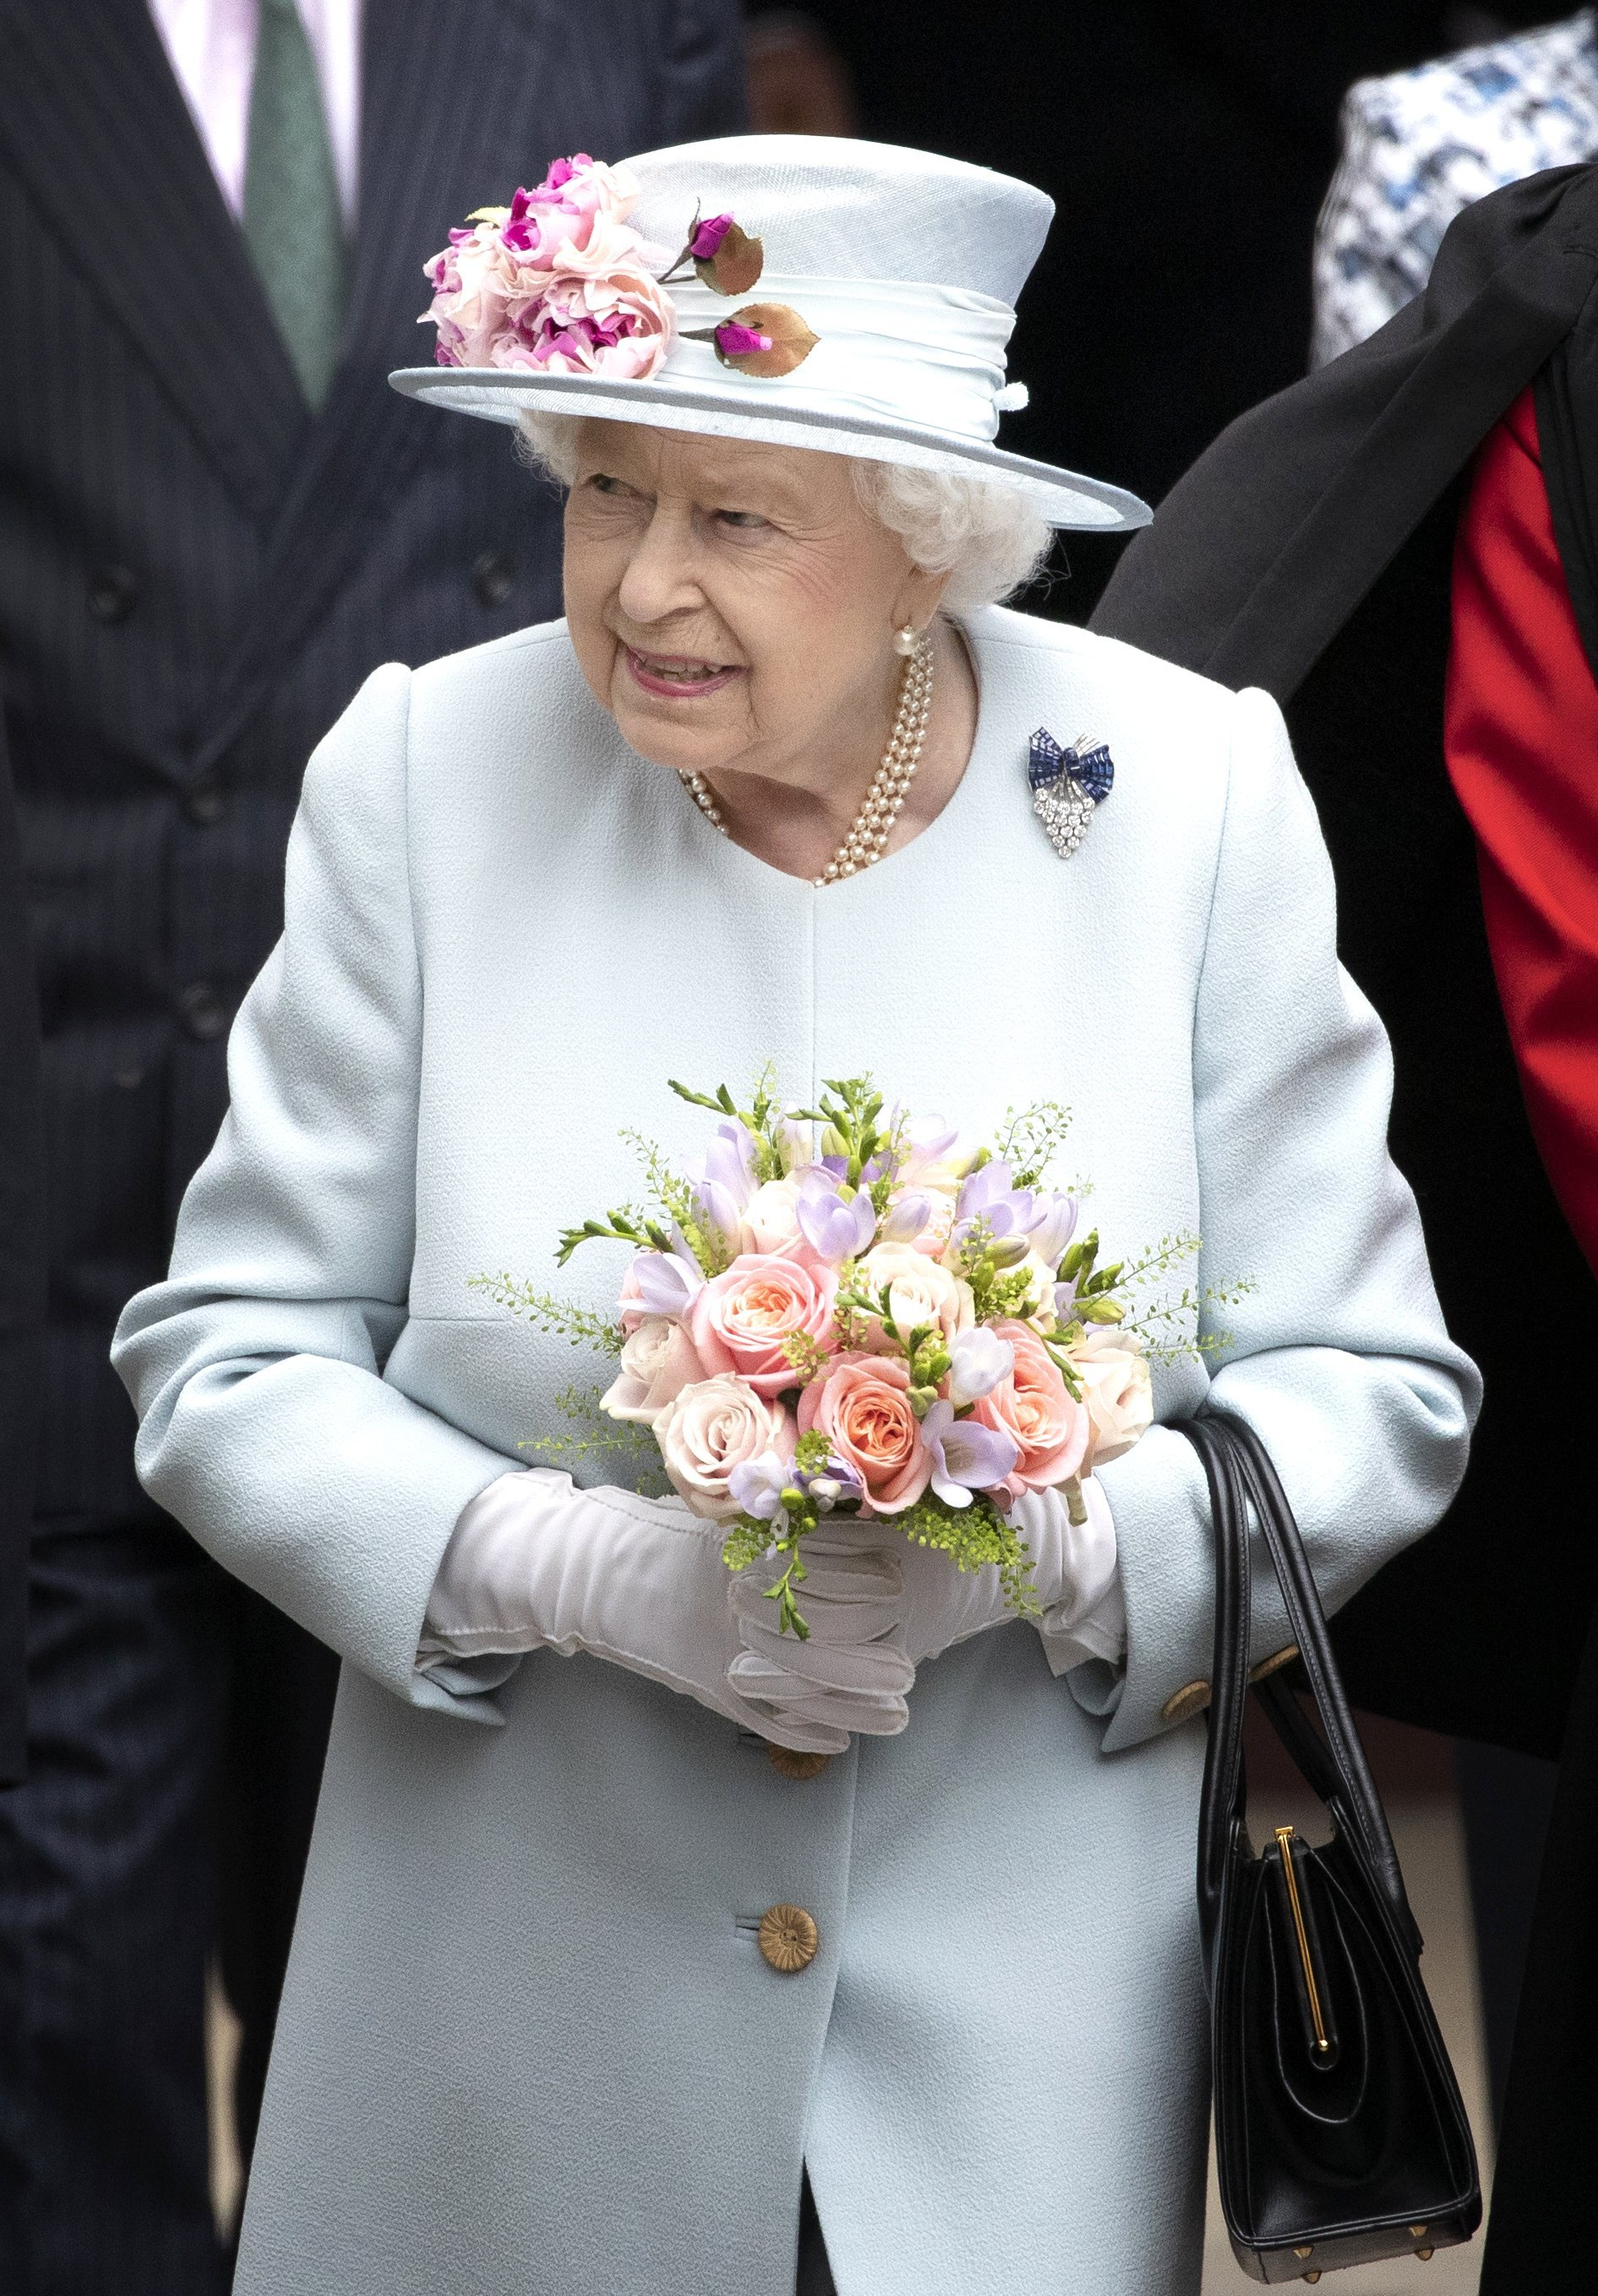 Queen Elizabeth II visits Canongate Kirk for church service in Edingburgh, Scotland on June 30, 2019 | Photo: Getty Images